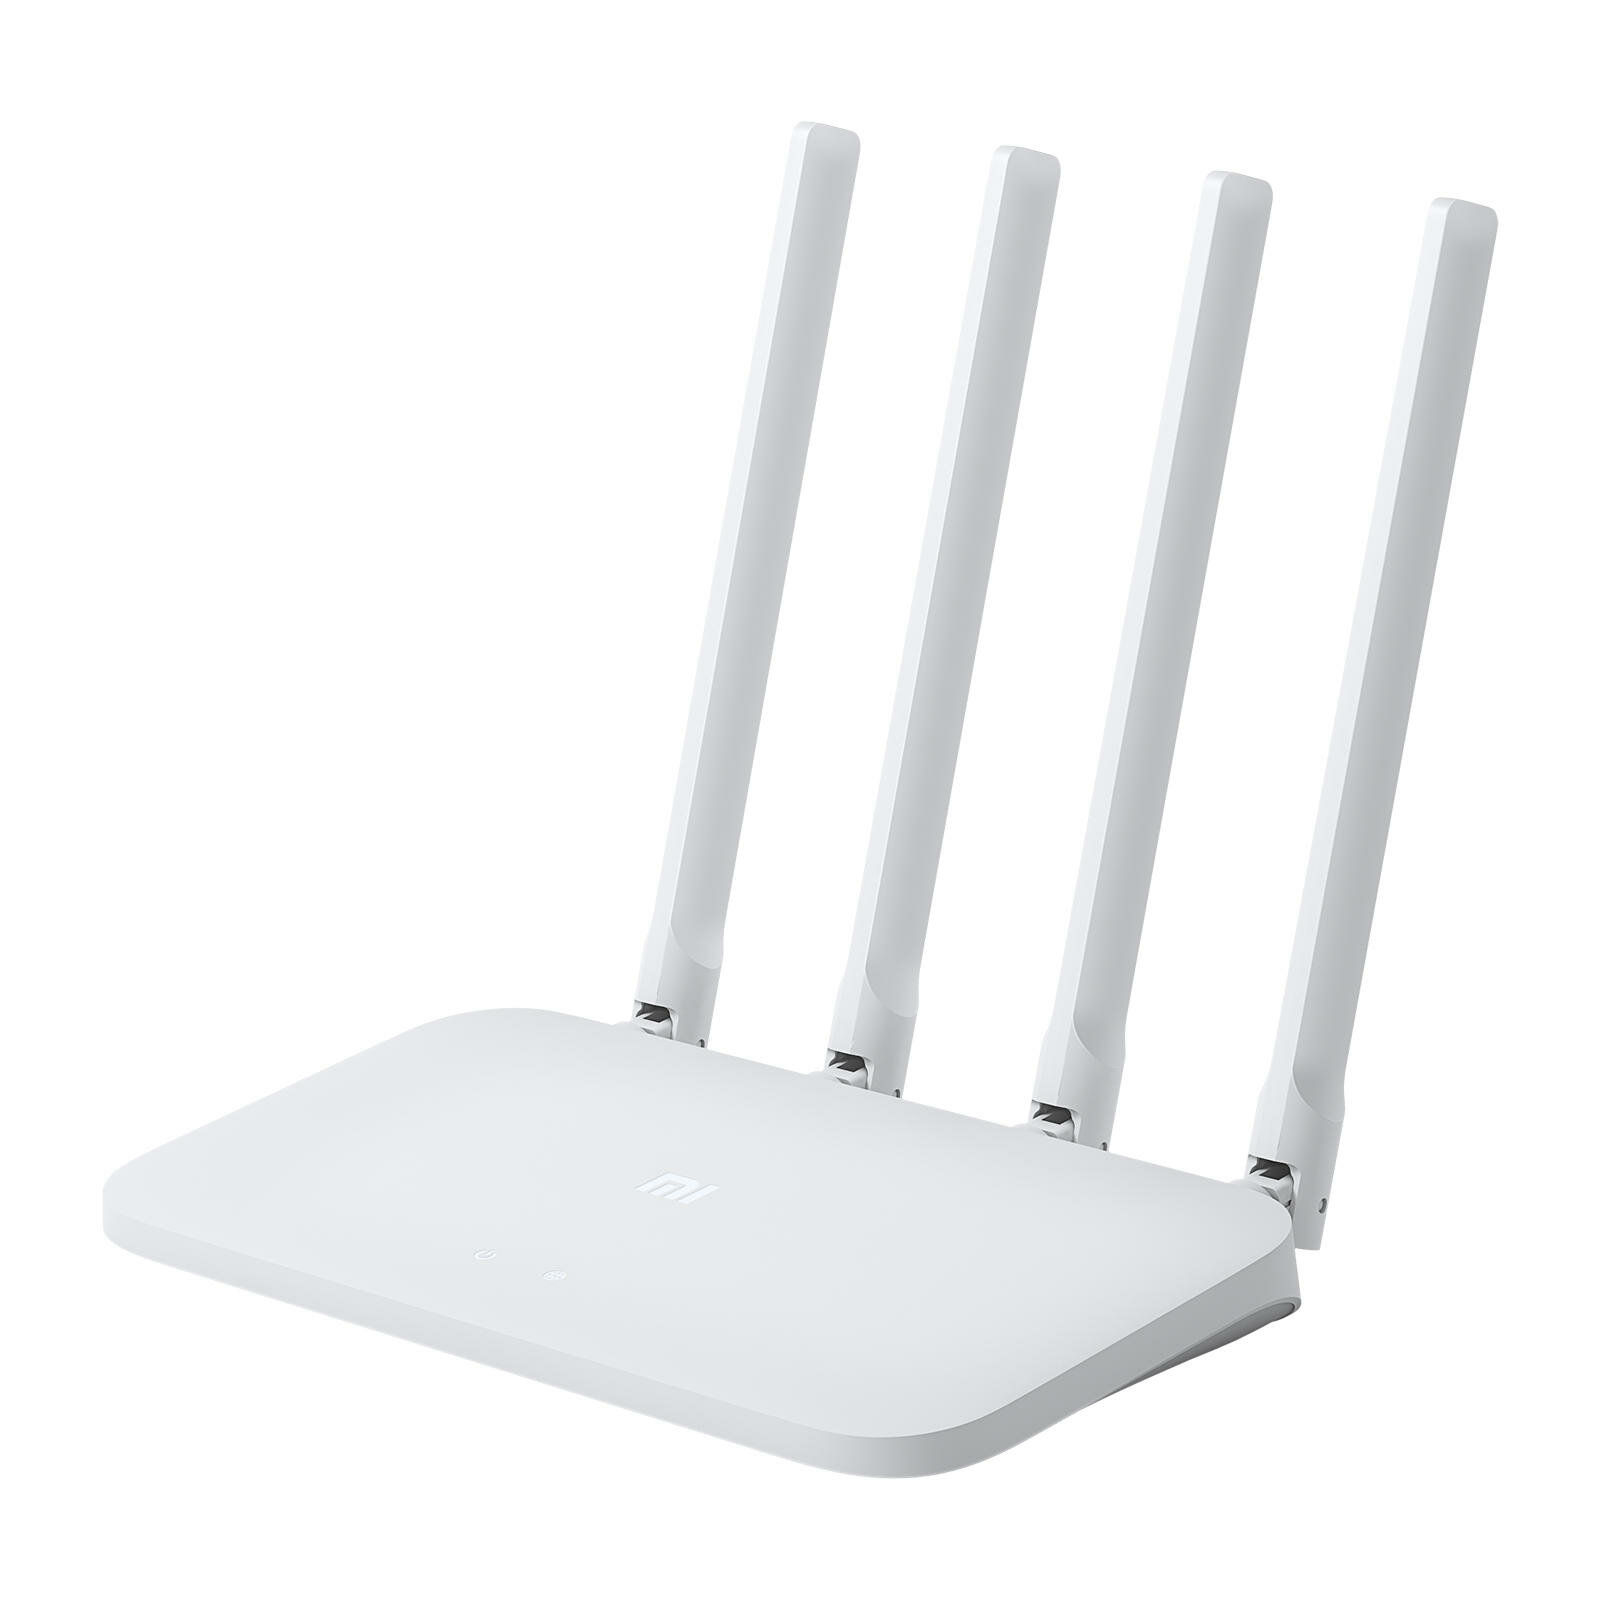 HUAWEI Wi-Fi WS5200 Gigabit Wireless Router Enhanced Version 2.4G 5G Dual Band 5dBi 1167Mbps Support IPv6 Wi-Fi Router - 1